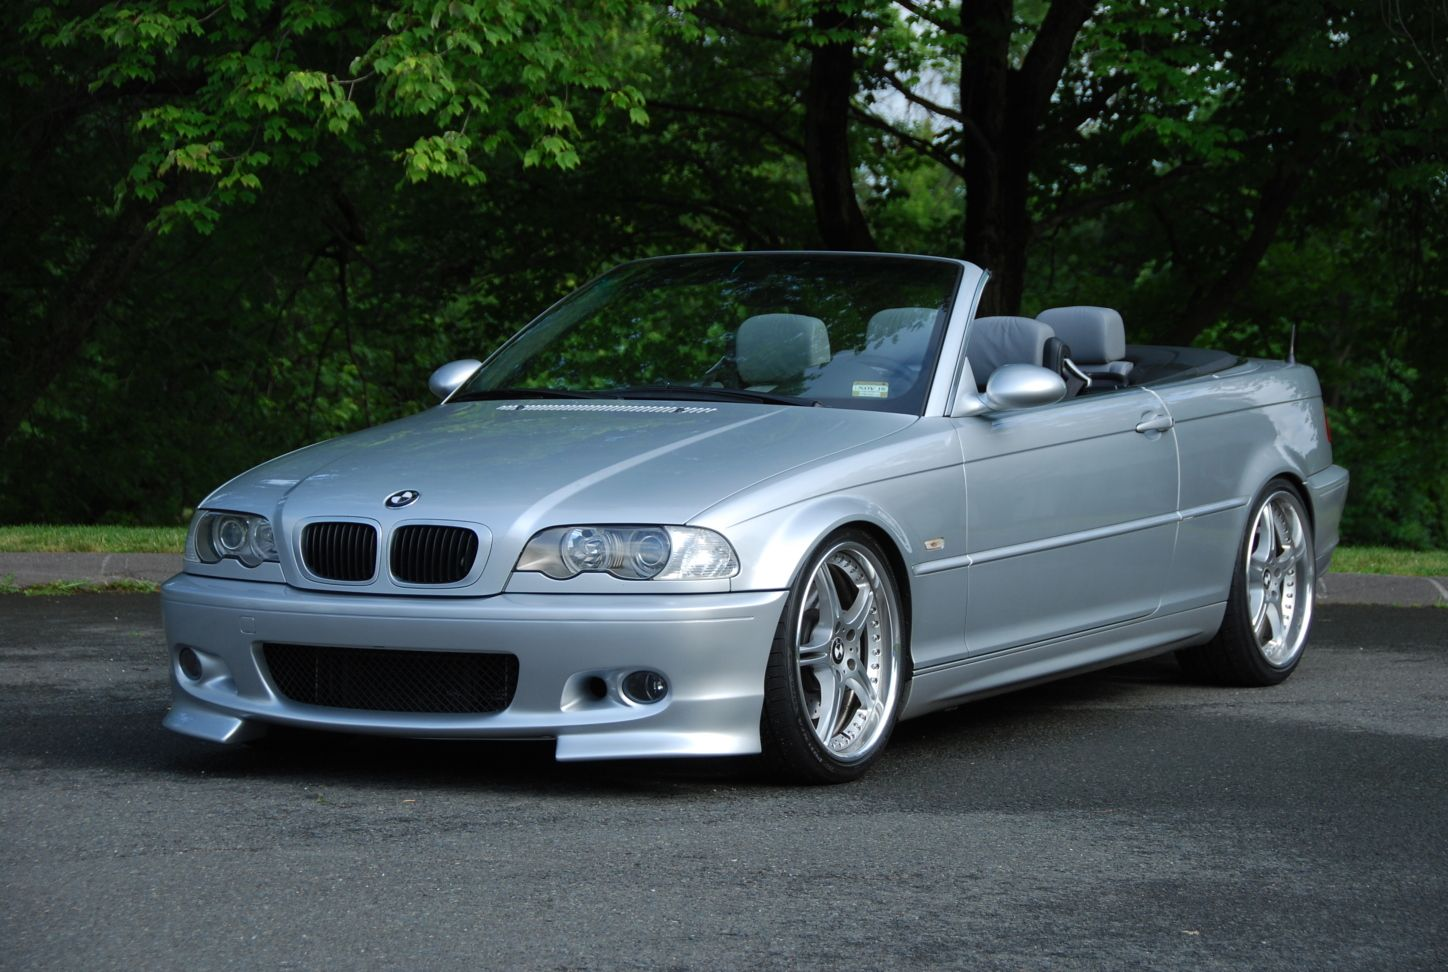 2001 bmw 330 for sale bloomfield connecticut. Black Bedroom Furniture Sets. Home Design Ideas